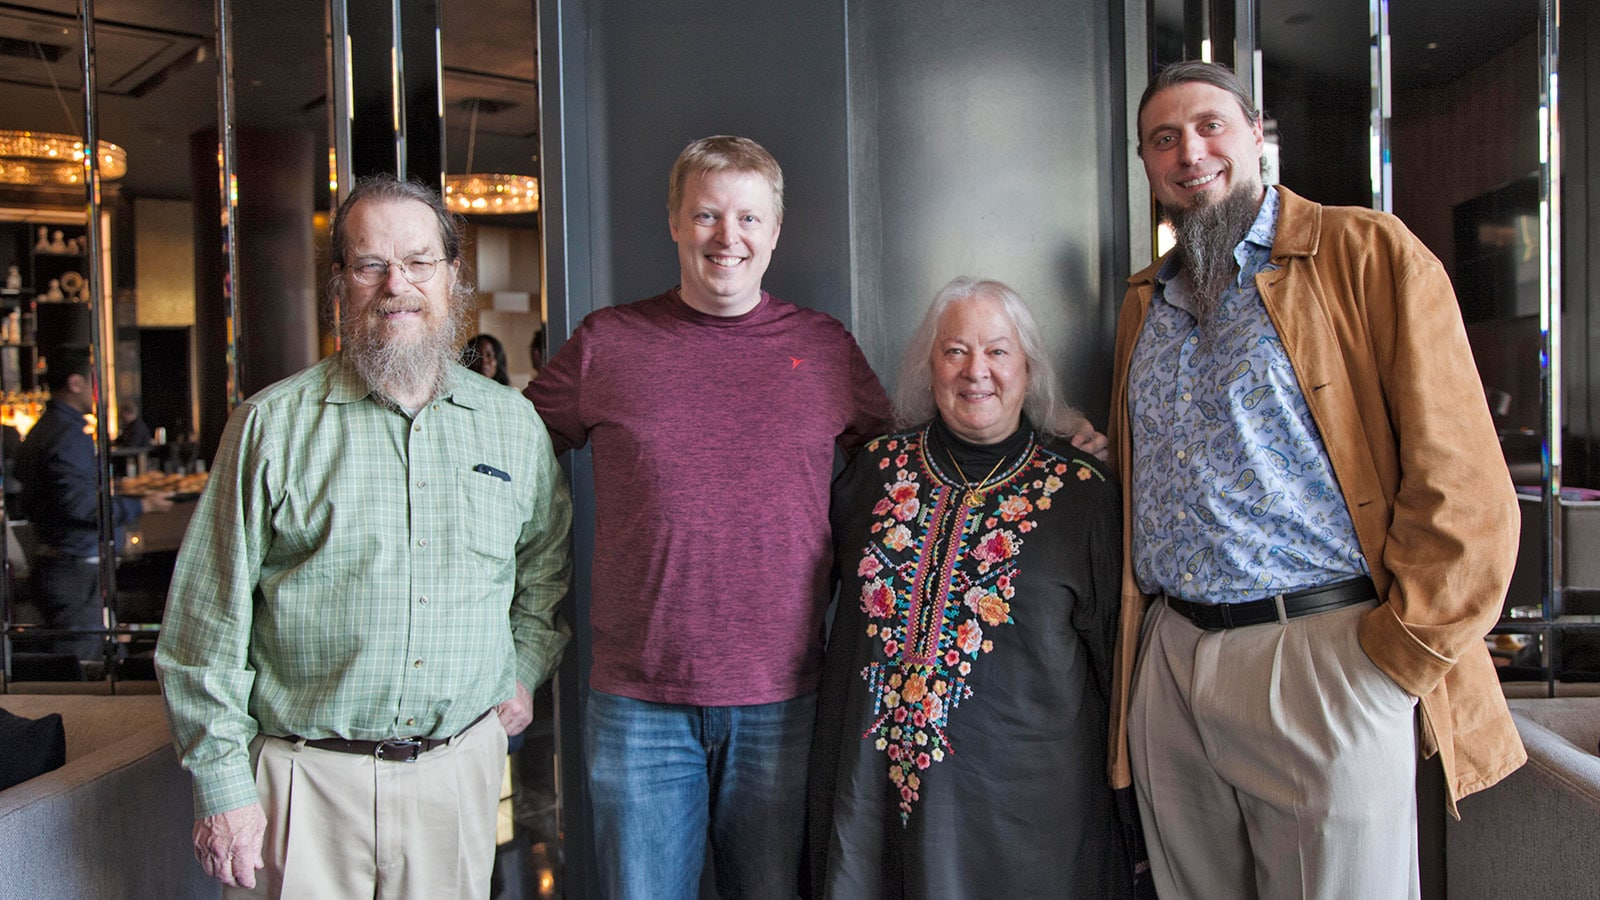 John and Helen pose with Broadway sound designers Andrew Keister (2nd from left) and Nicholas Pope (right) after the NYC LINA Demo event